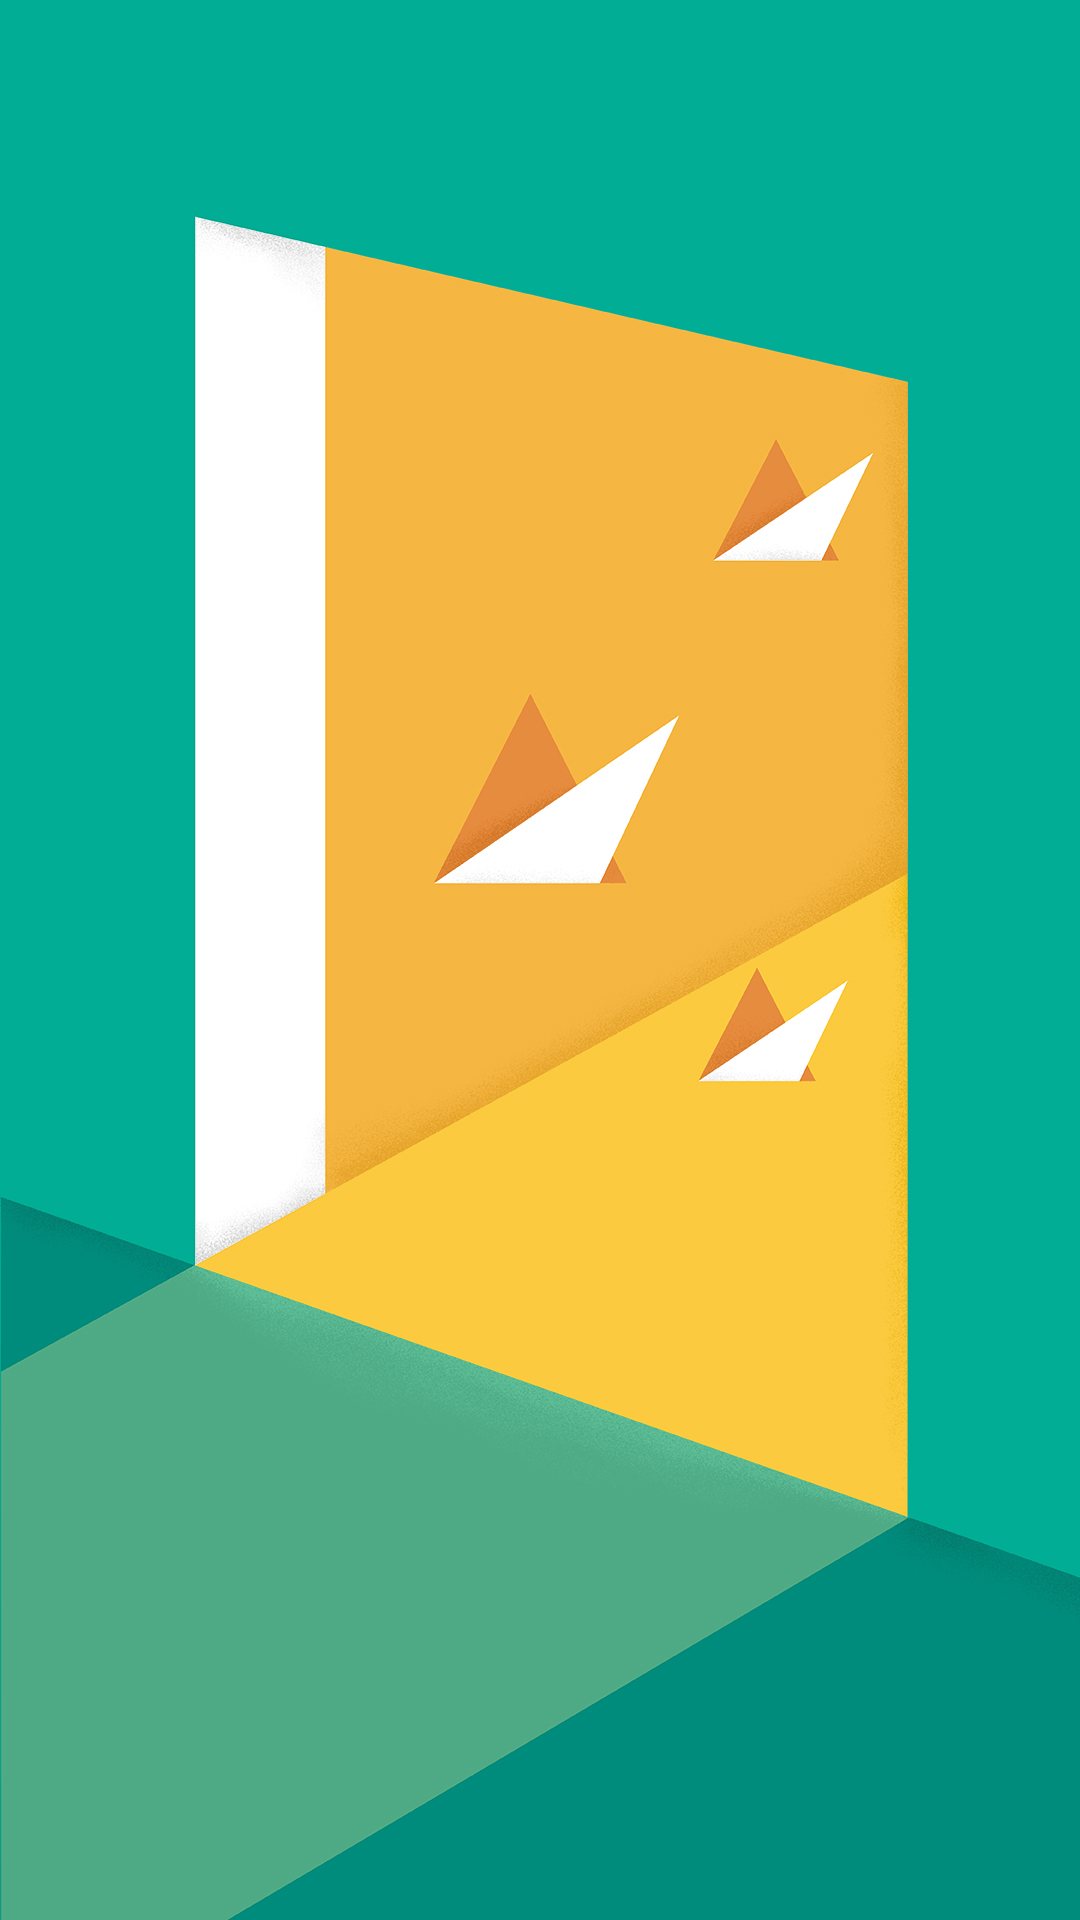 paper_planes-OnePlus-2-Wallpapers